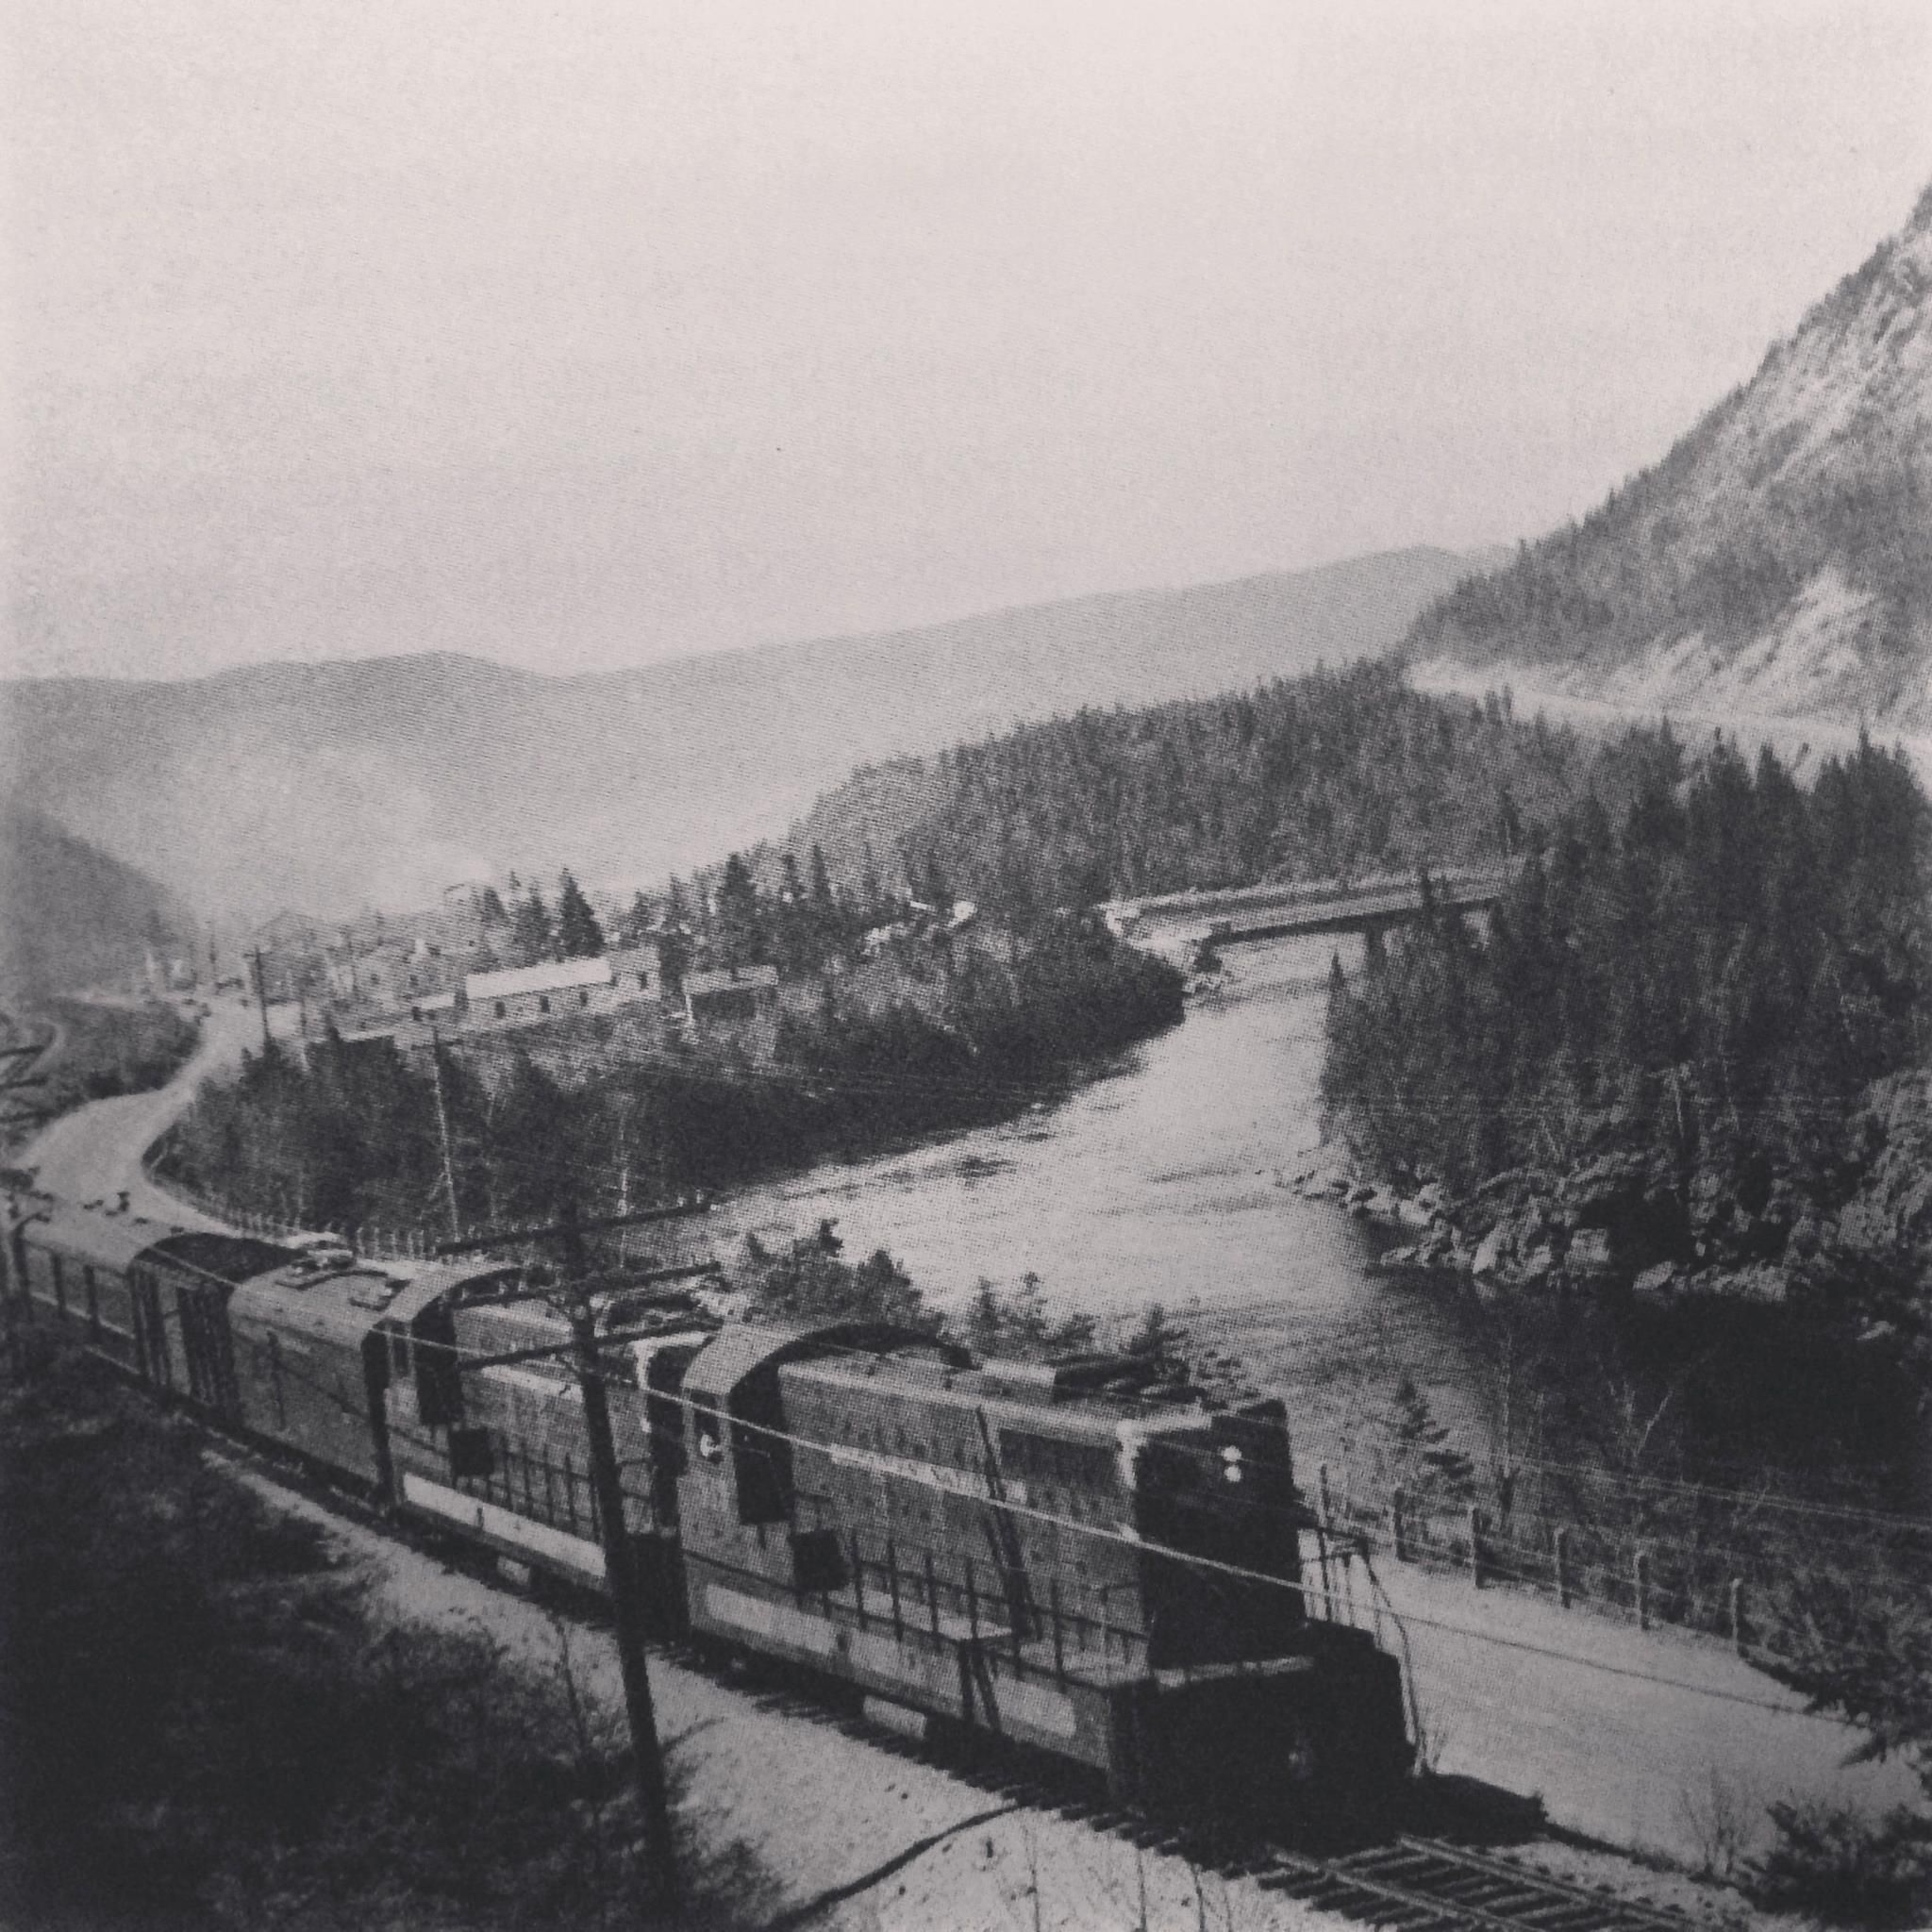 Flashback Friday Vintage Pic Of Humber Valley Newfoundland 1950s Credit To The Book Of Newfoundlan Newfoundland Labrador Training Newfoundland And Labrador